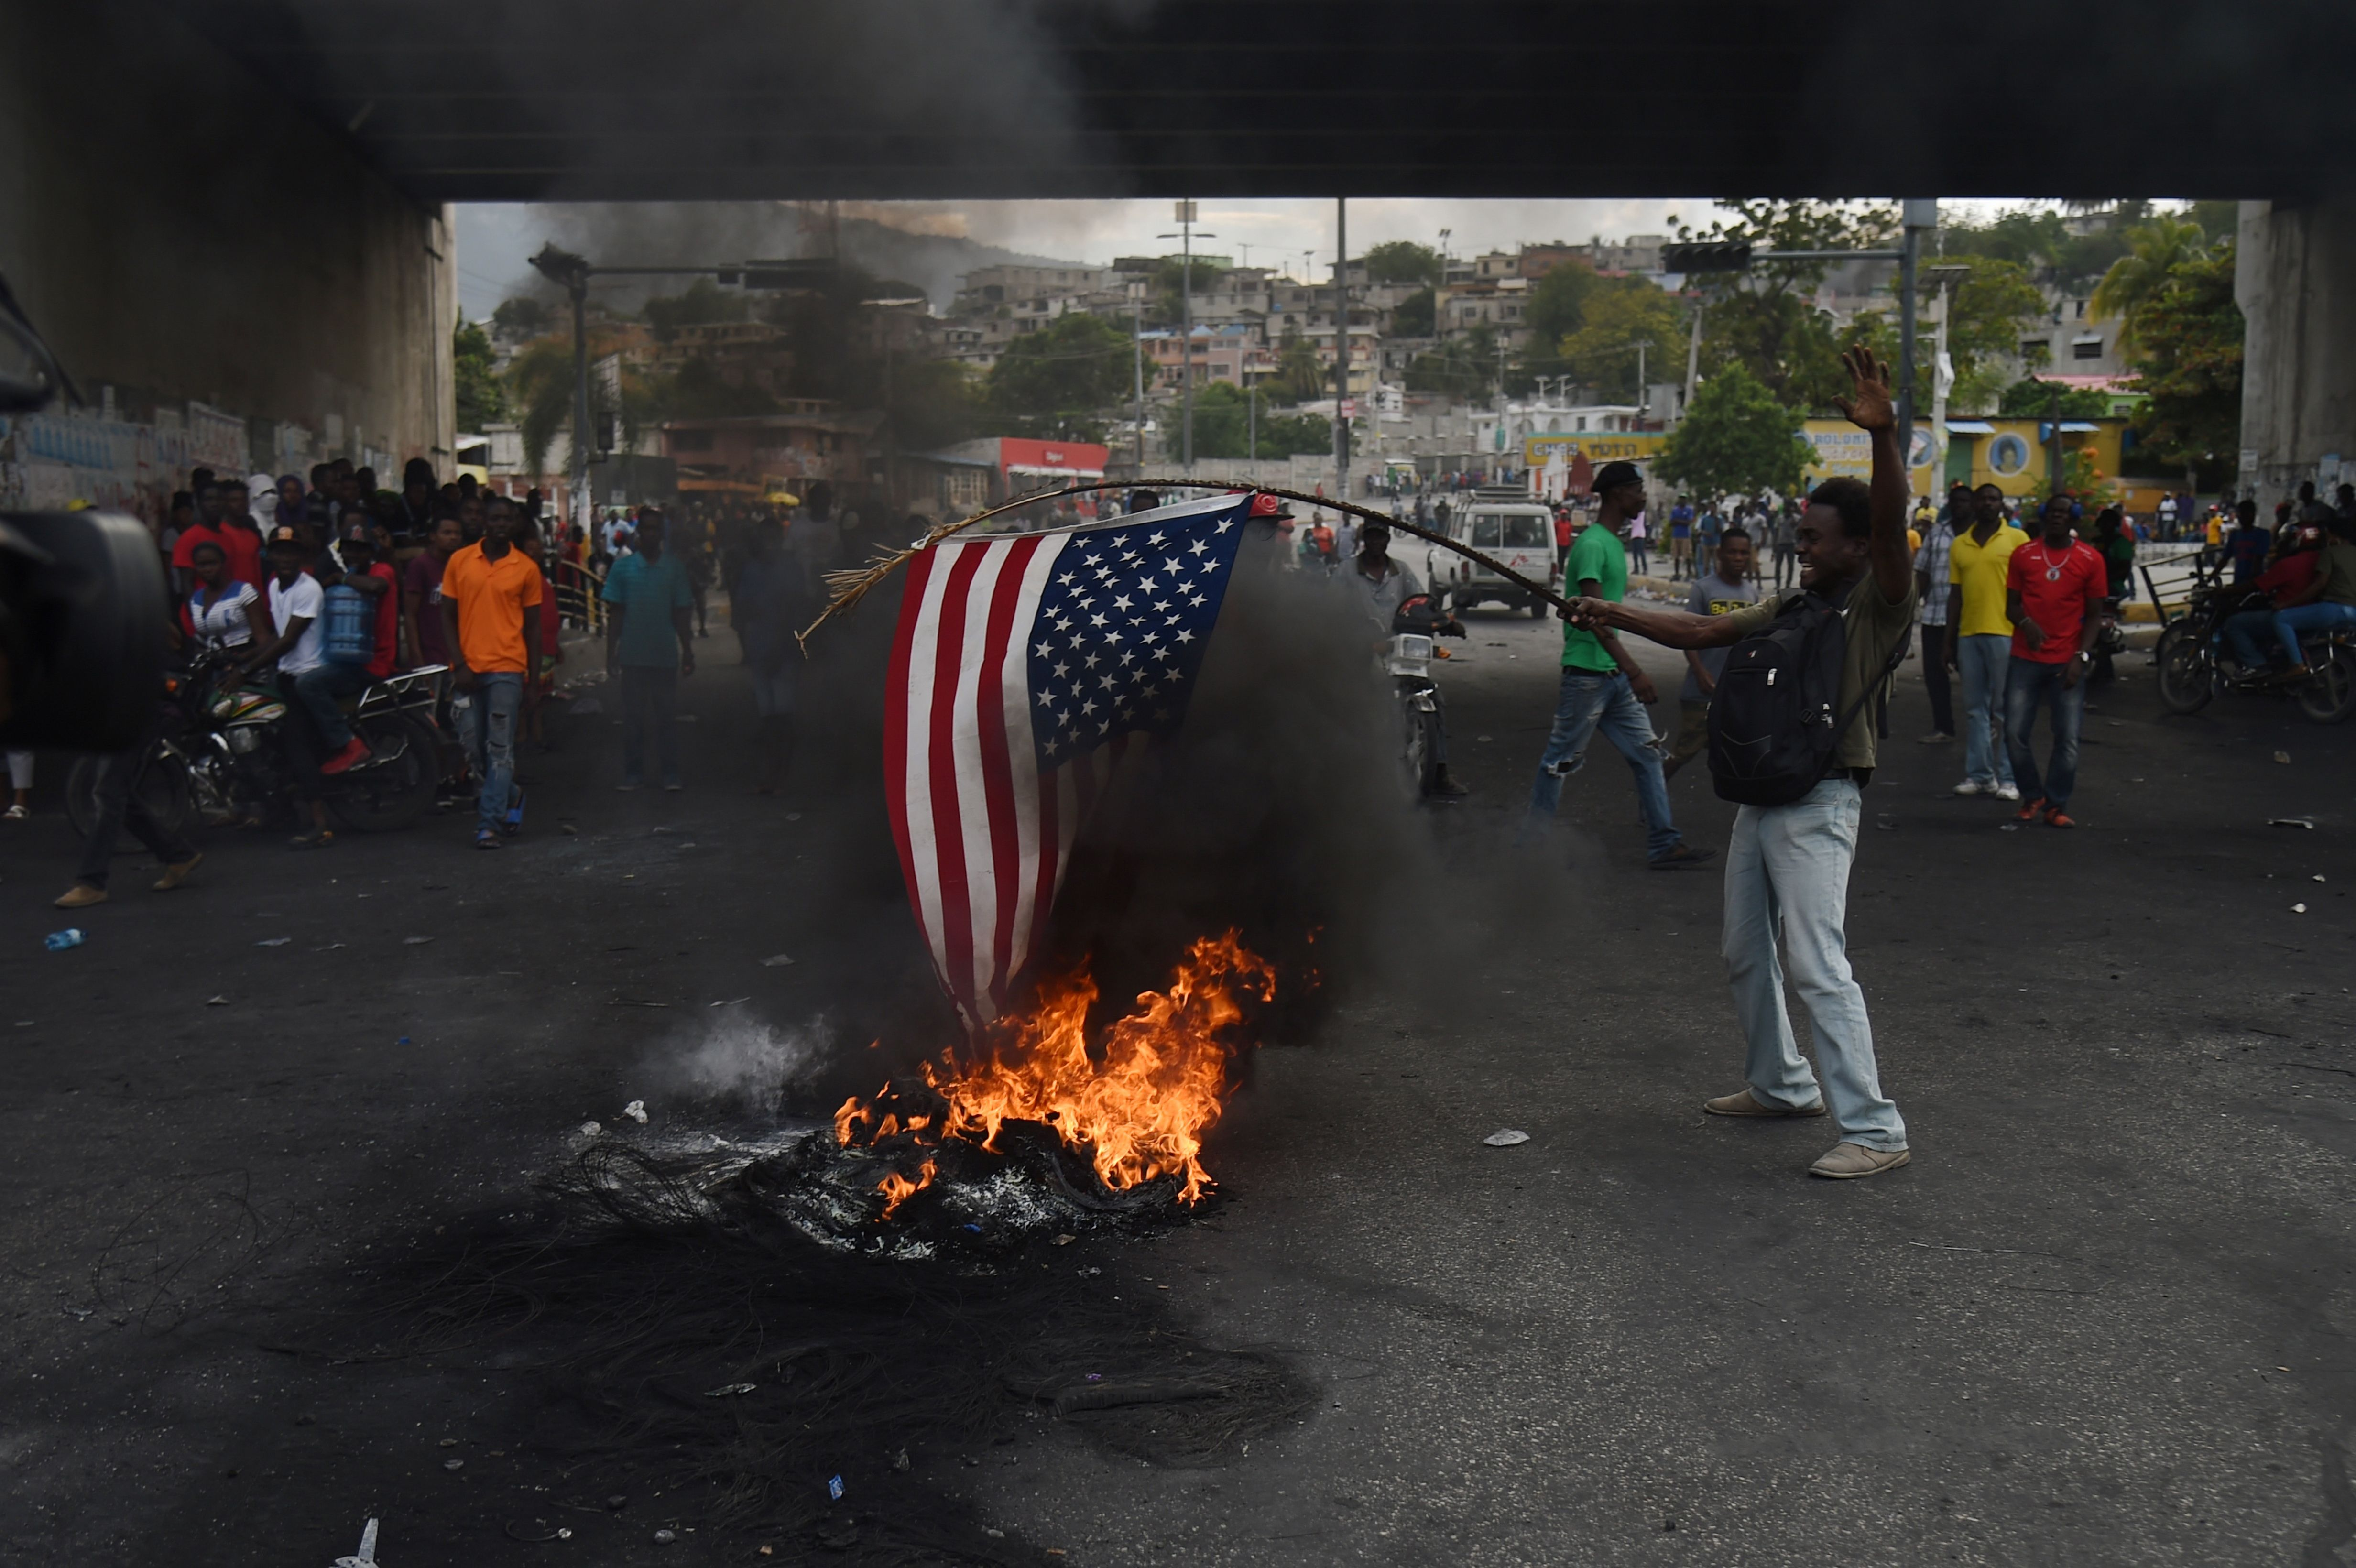 A protester burns a US flag during a demonstration in the Haitian Capital Port-au-Prince, February 15, 2019, on the ninth day of protests against Haitian President Jovenel Moise and the misuse of the Petrocaribe fund. (Photo by HECTOR RETAMAL / AFP)